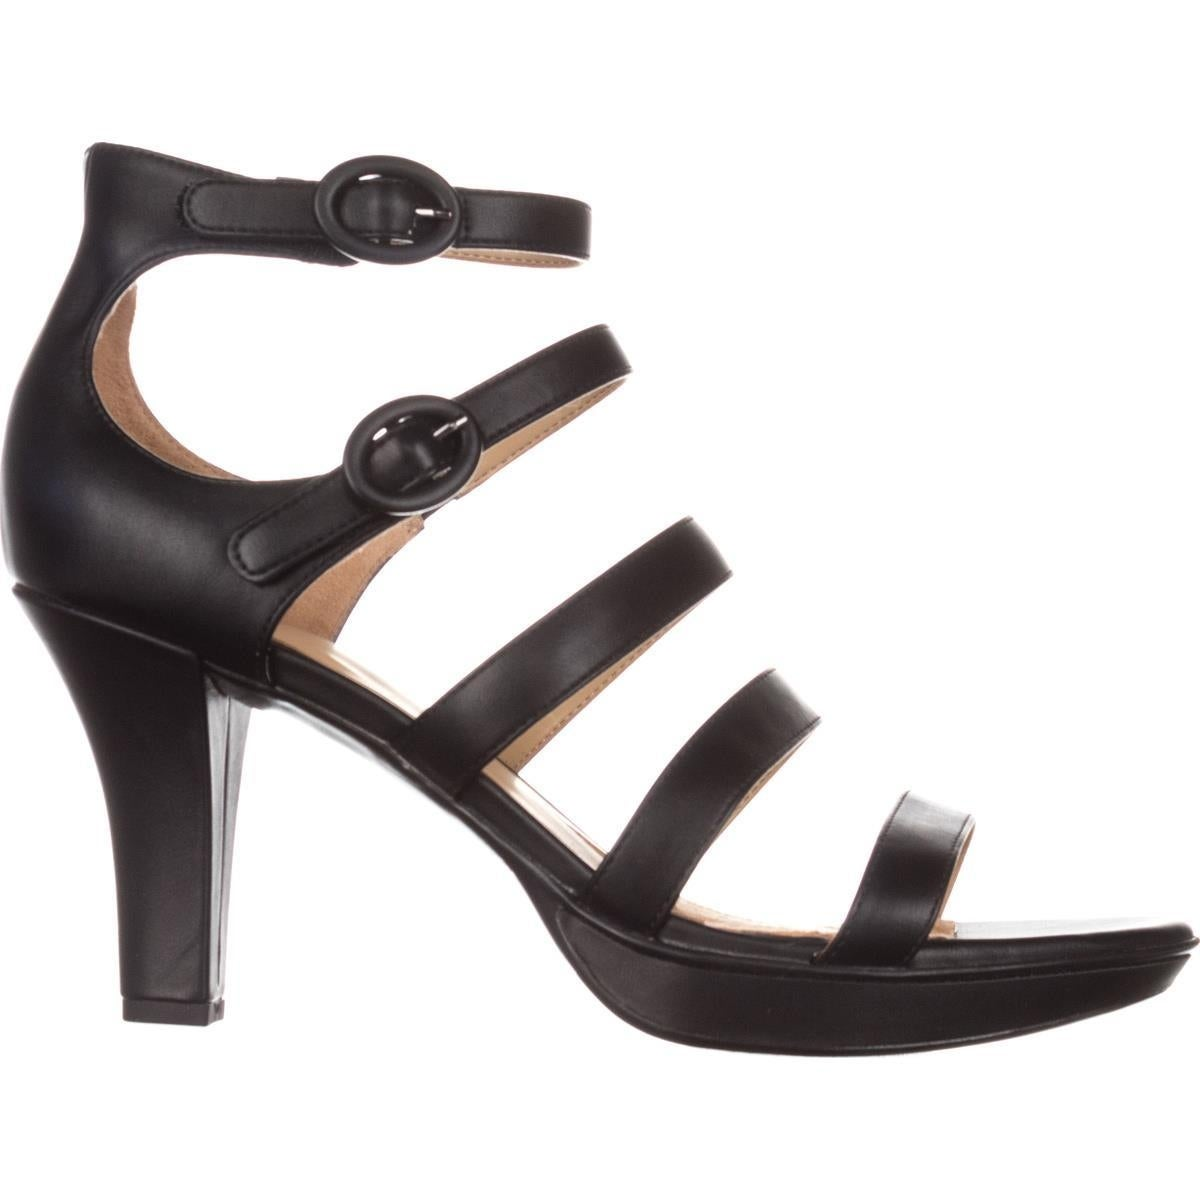 25edbadac22a Shop naturalizer Dessie Strappy Platform Sandals